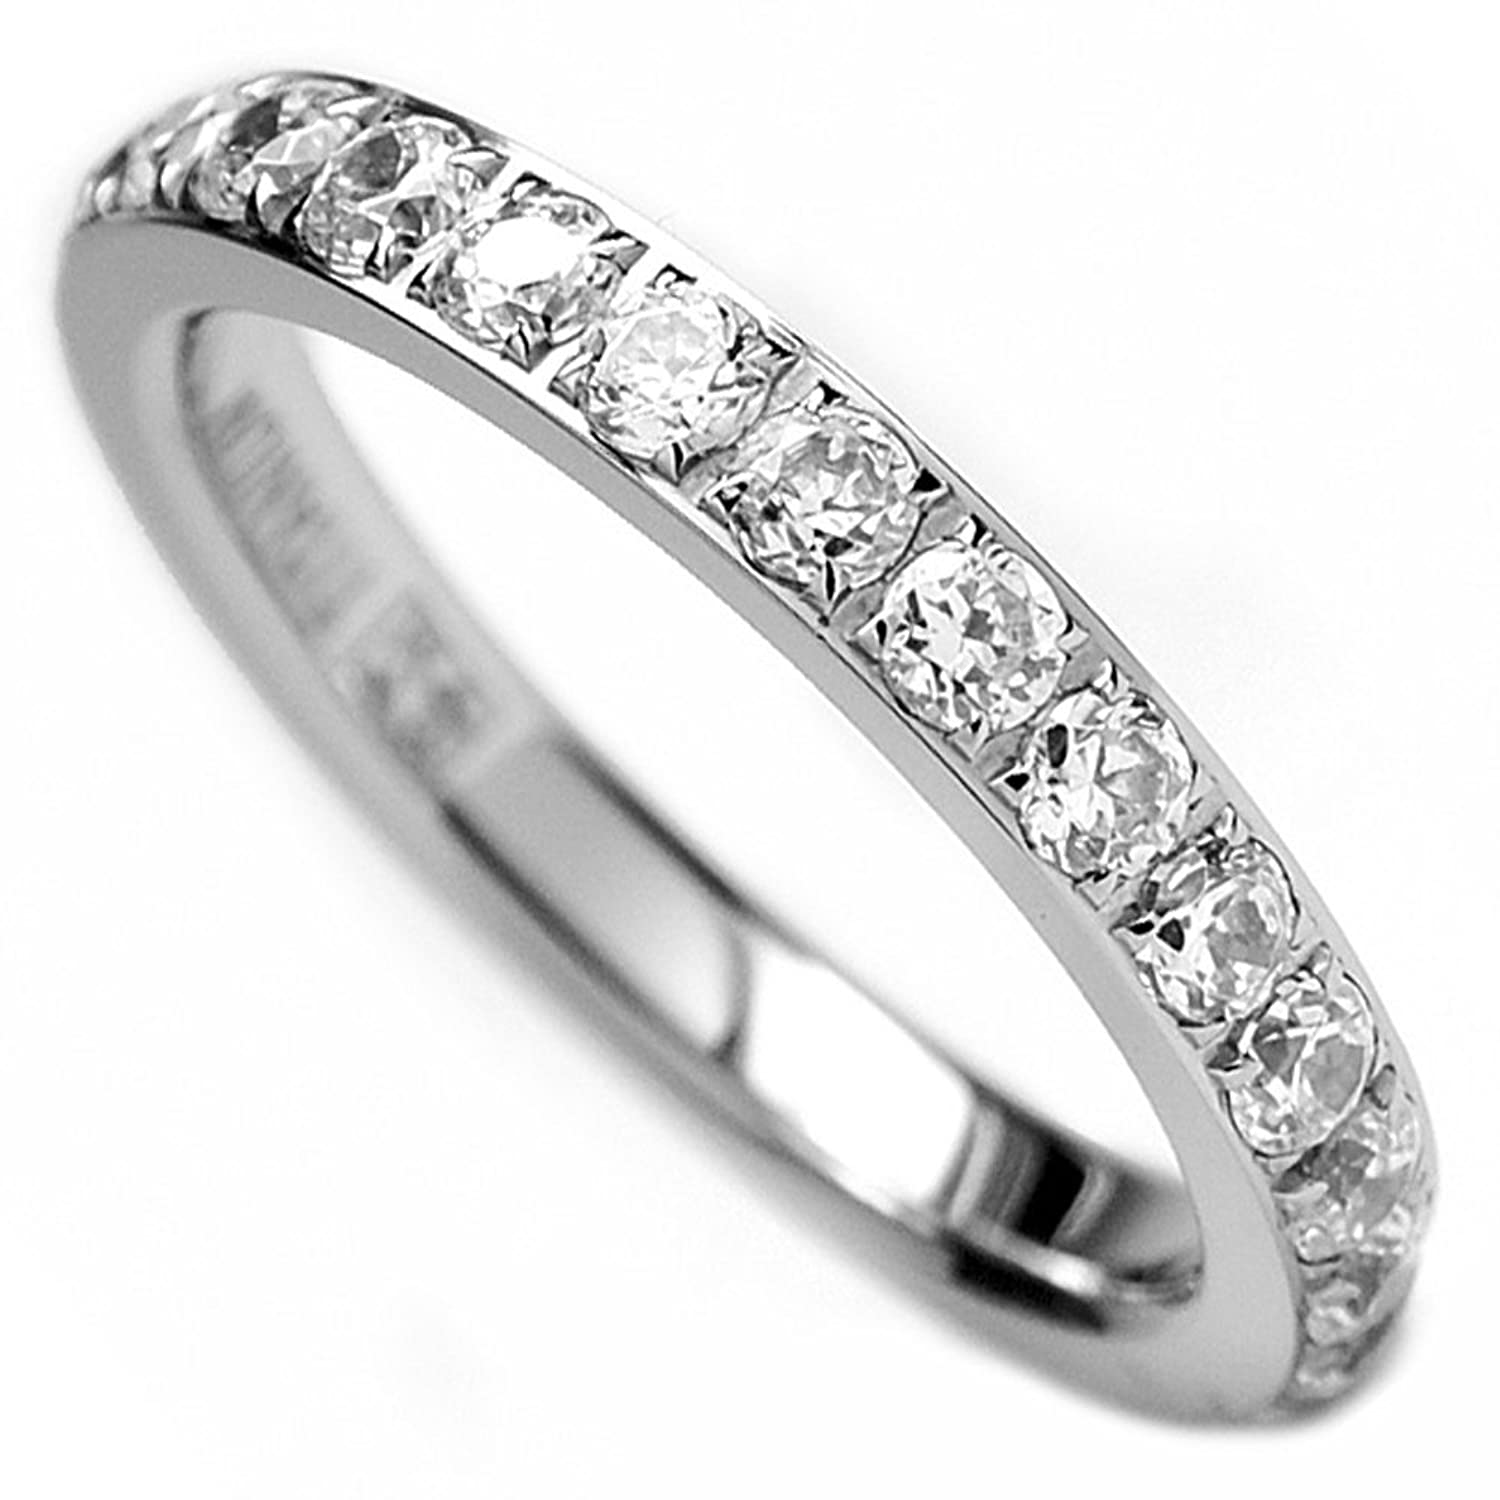 vendor products assembled miscellaneous rings with in hand colour diamonds contains appraisal jewellery cut h princess bands comes oliver ct cf clarity platinum type review approximately g band gem eternity size of good diamond totaling